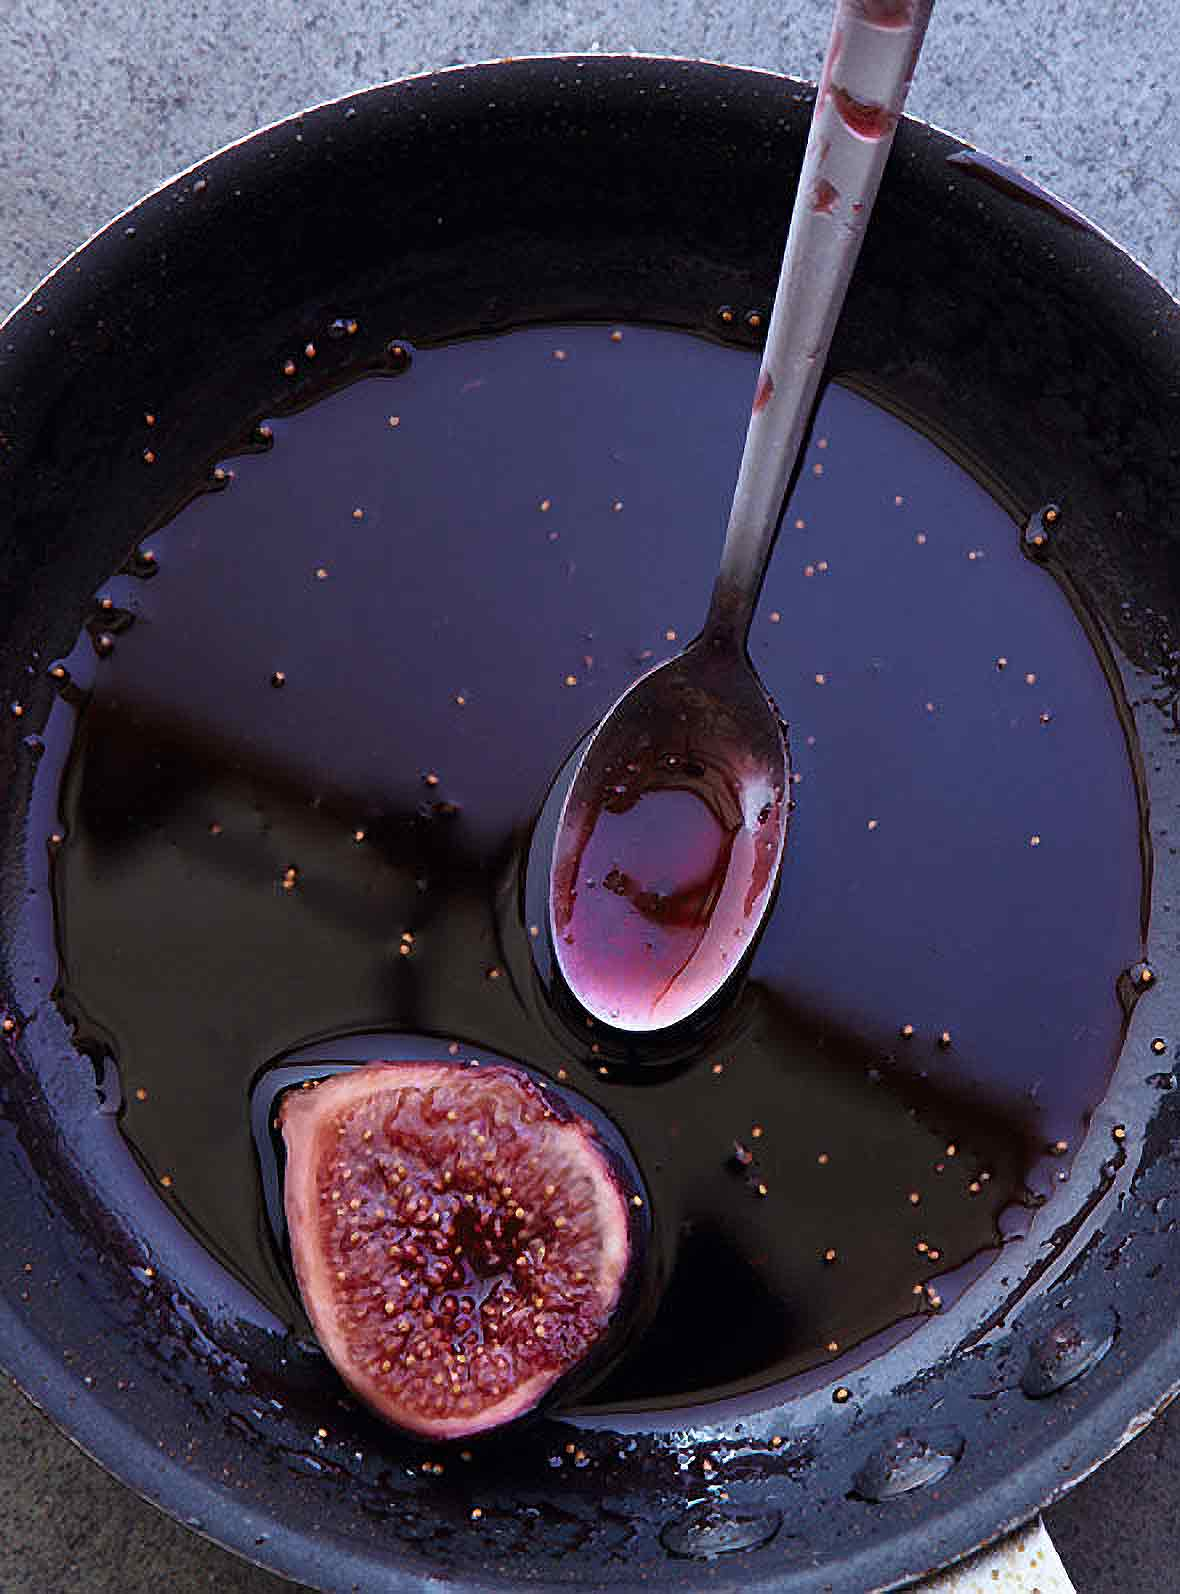 A black skillet with figs in Port wine and a spoon on the side